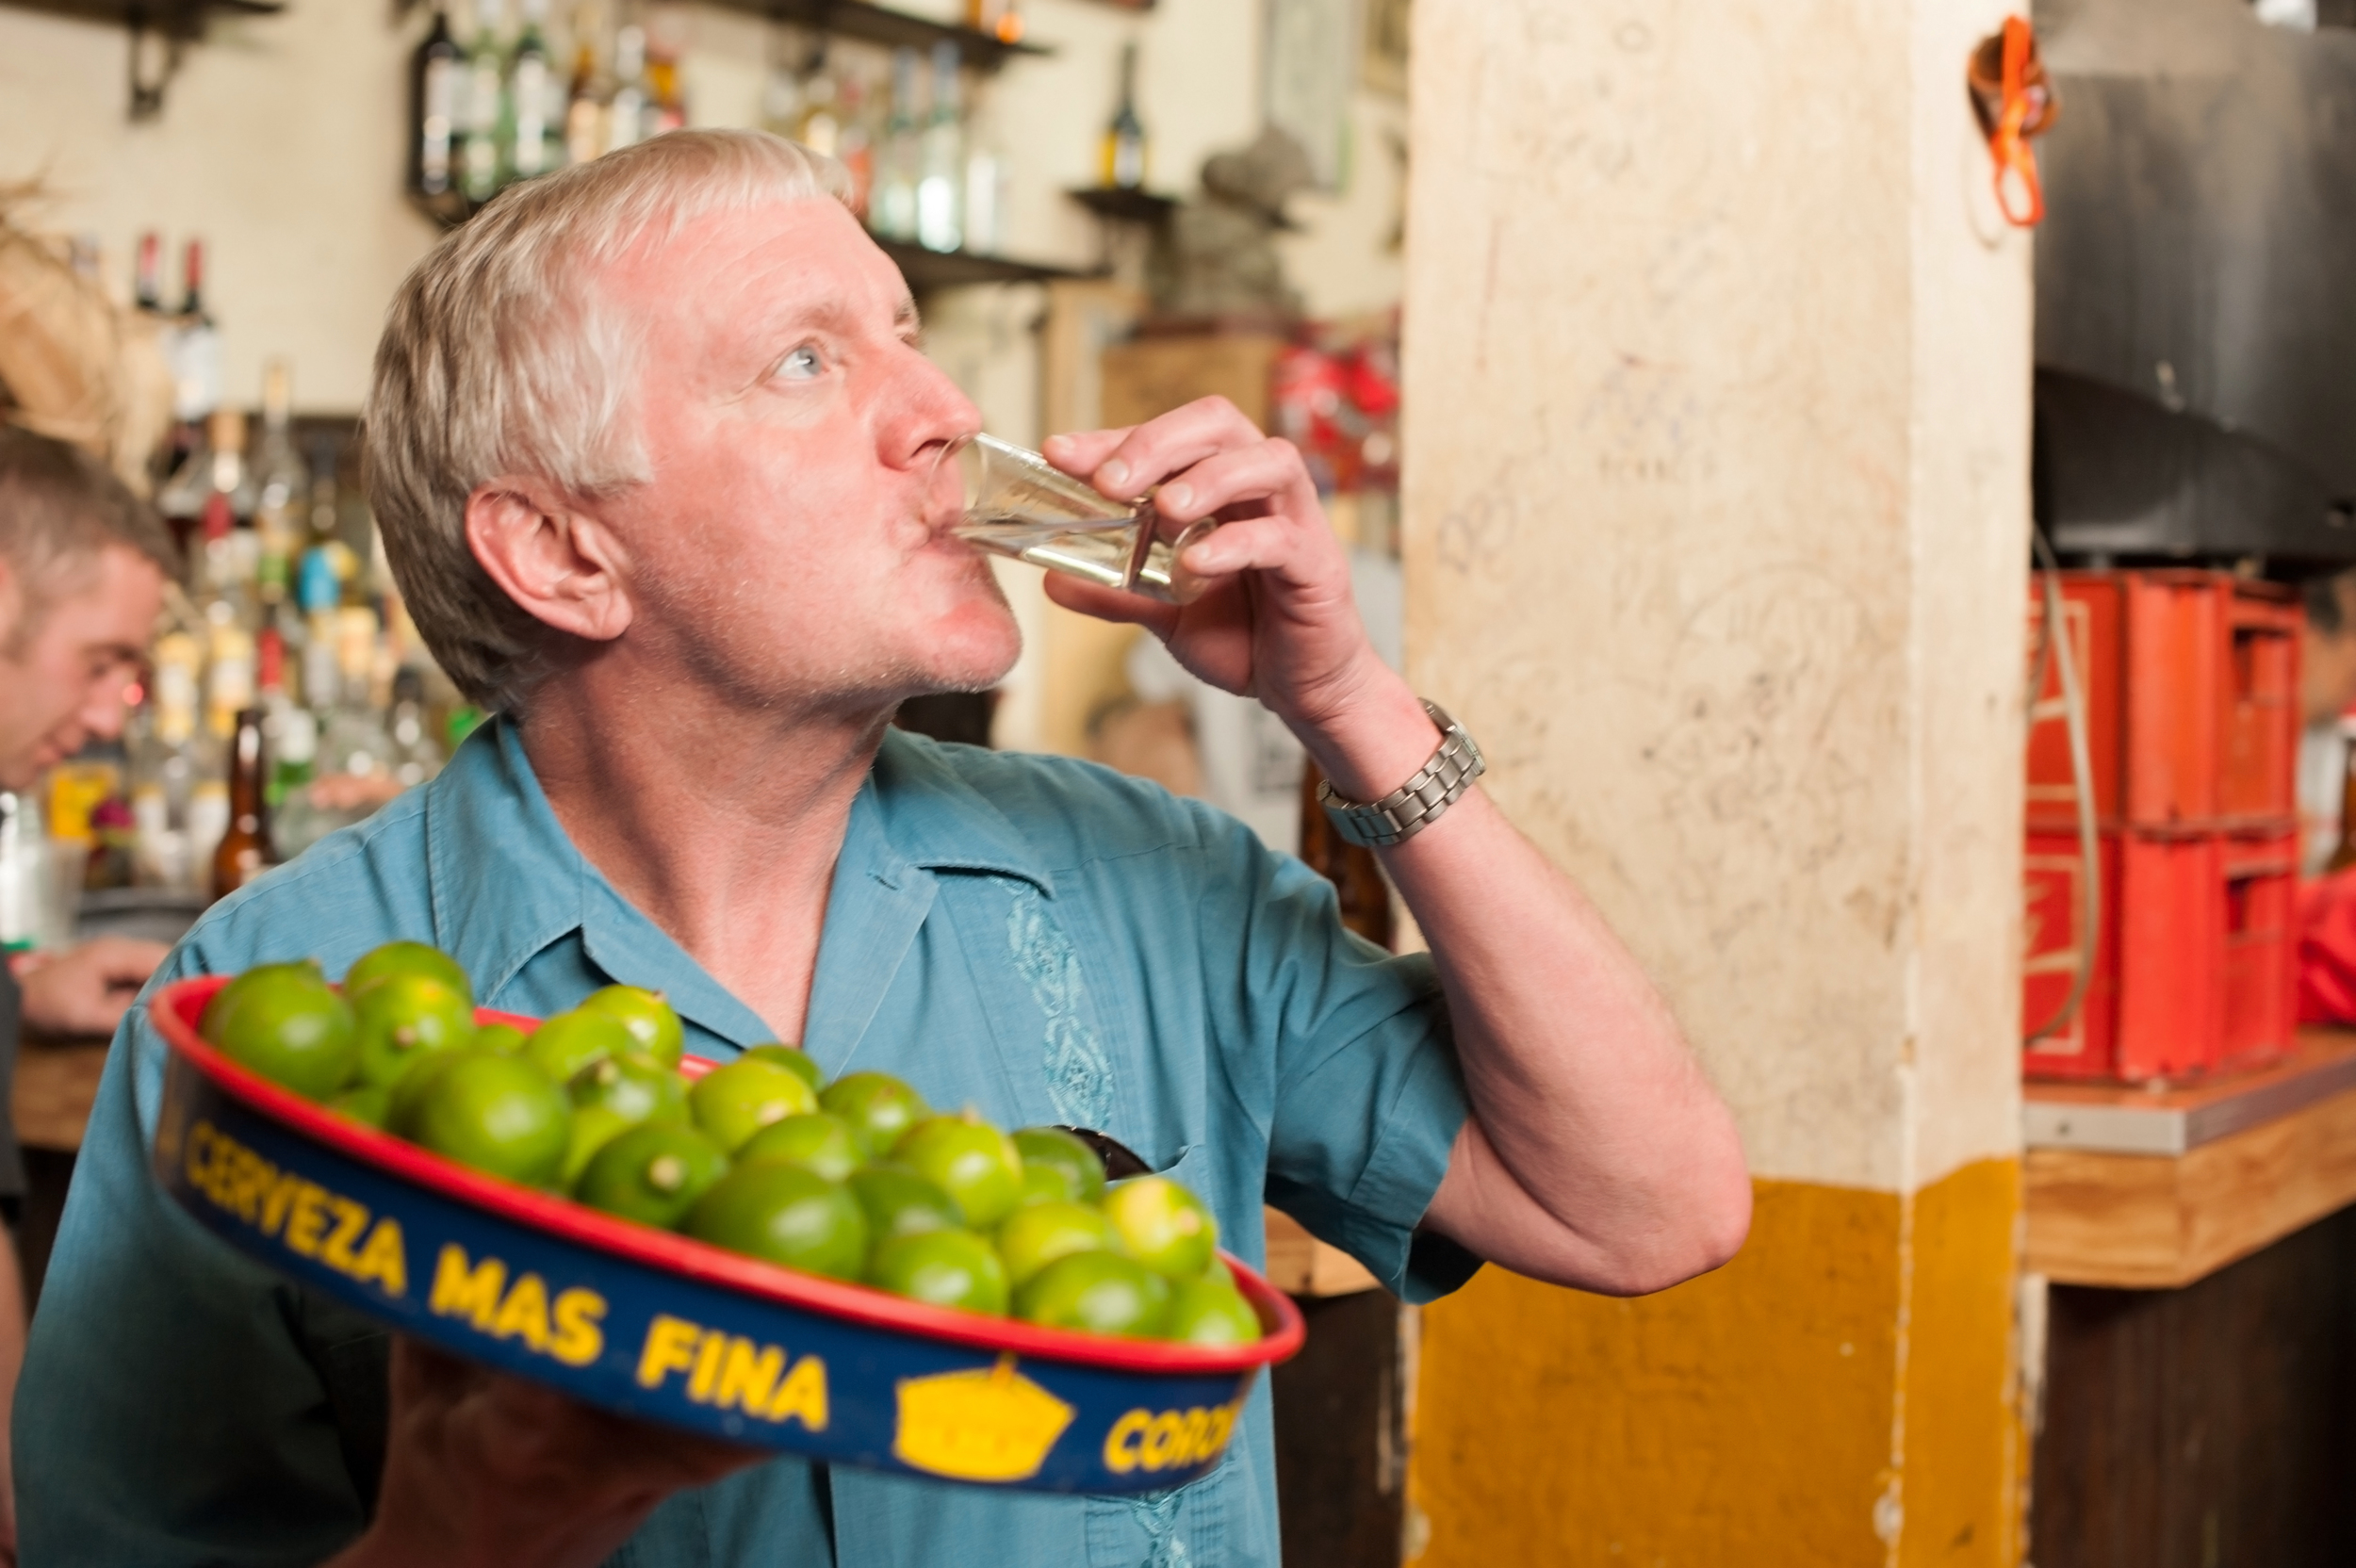 Disclaimer: This is not Walter! It's another tequila lover, Kevin Holloran, hanging out in La Cucaracha taking cheap tequila shots.